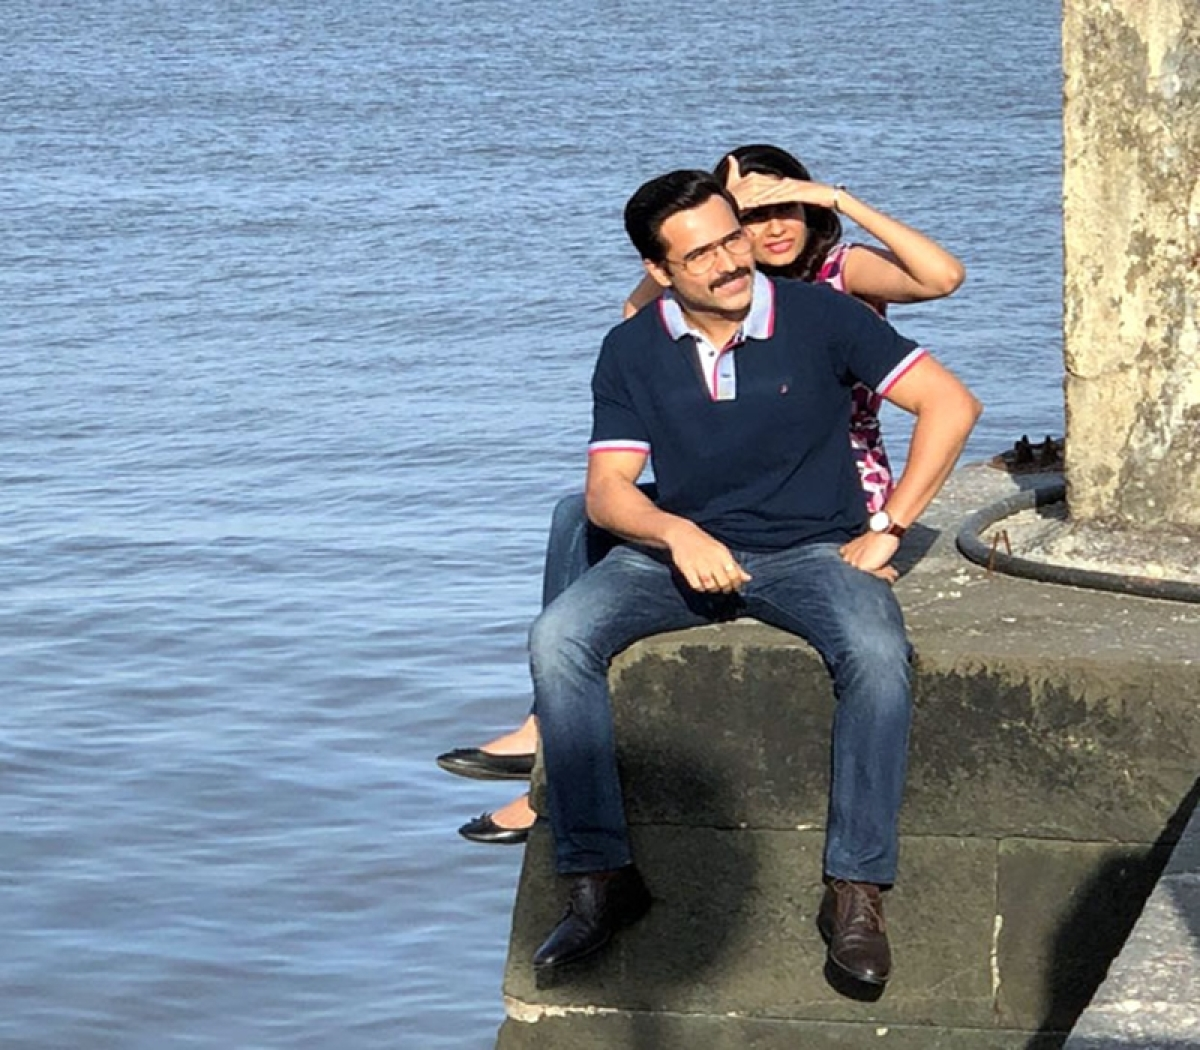 In Pics: Emraan Hashmi and his leading lady Shreya Dhanwanthary shoot for Cheat India in Mumbai